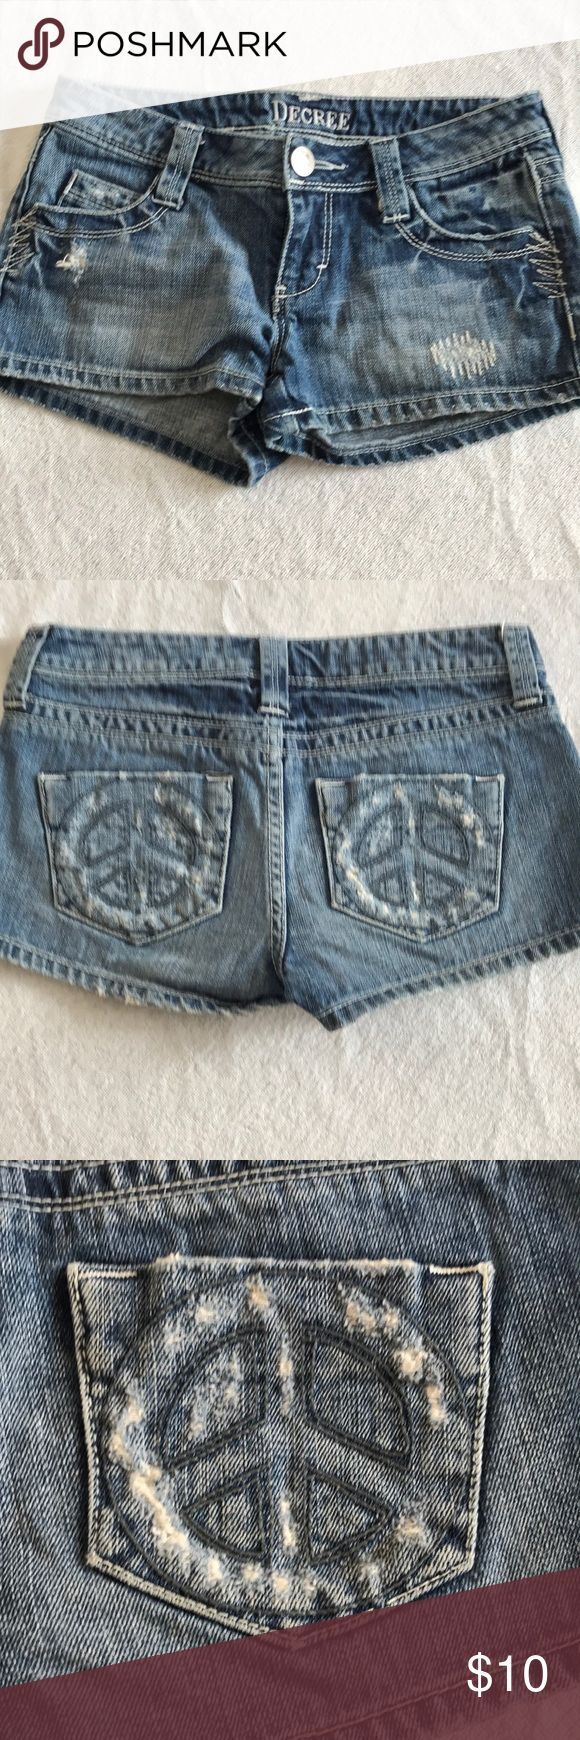 """Decree Distressed denim shorts size 0 Slightly distressed denim shorts, size 0. Slight fraying around the bottoms. Cute peace sign design on back pockets. Button and zip fly.  Waist measures 14"""" flat across, 6"""" rise and 2"""" inseam any questions please ask Decree Shorts Jean Shorts"""